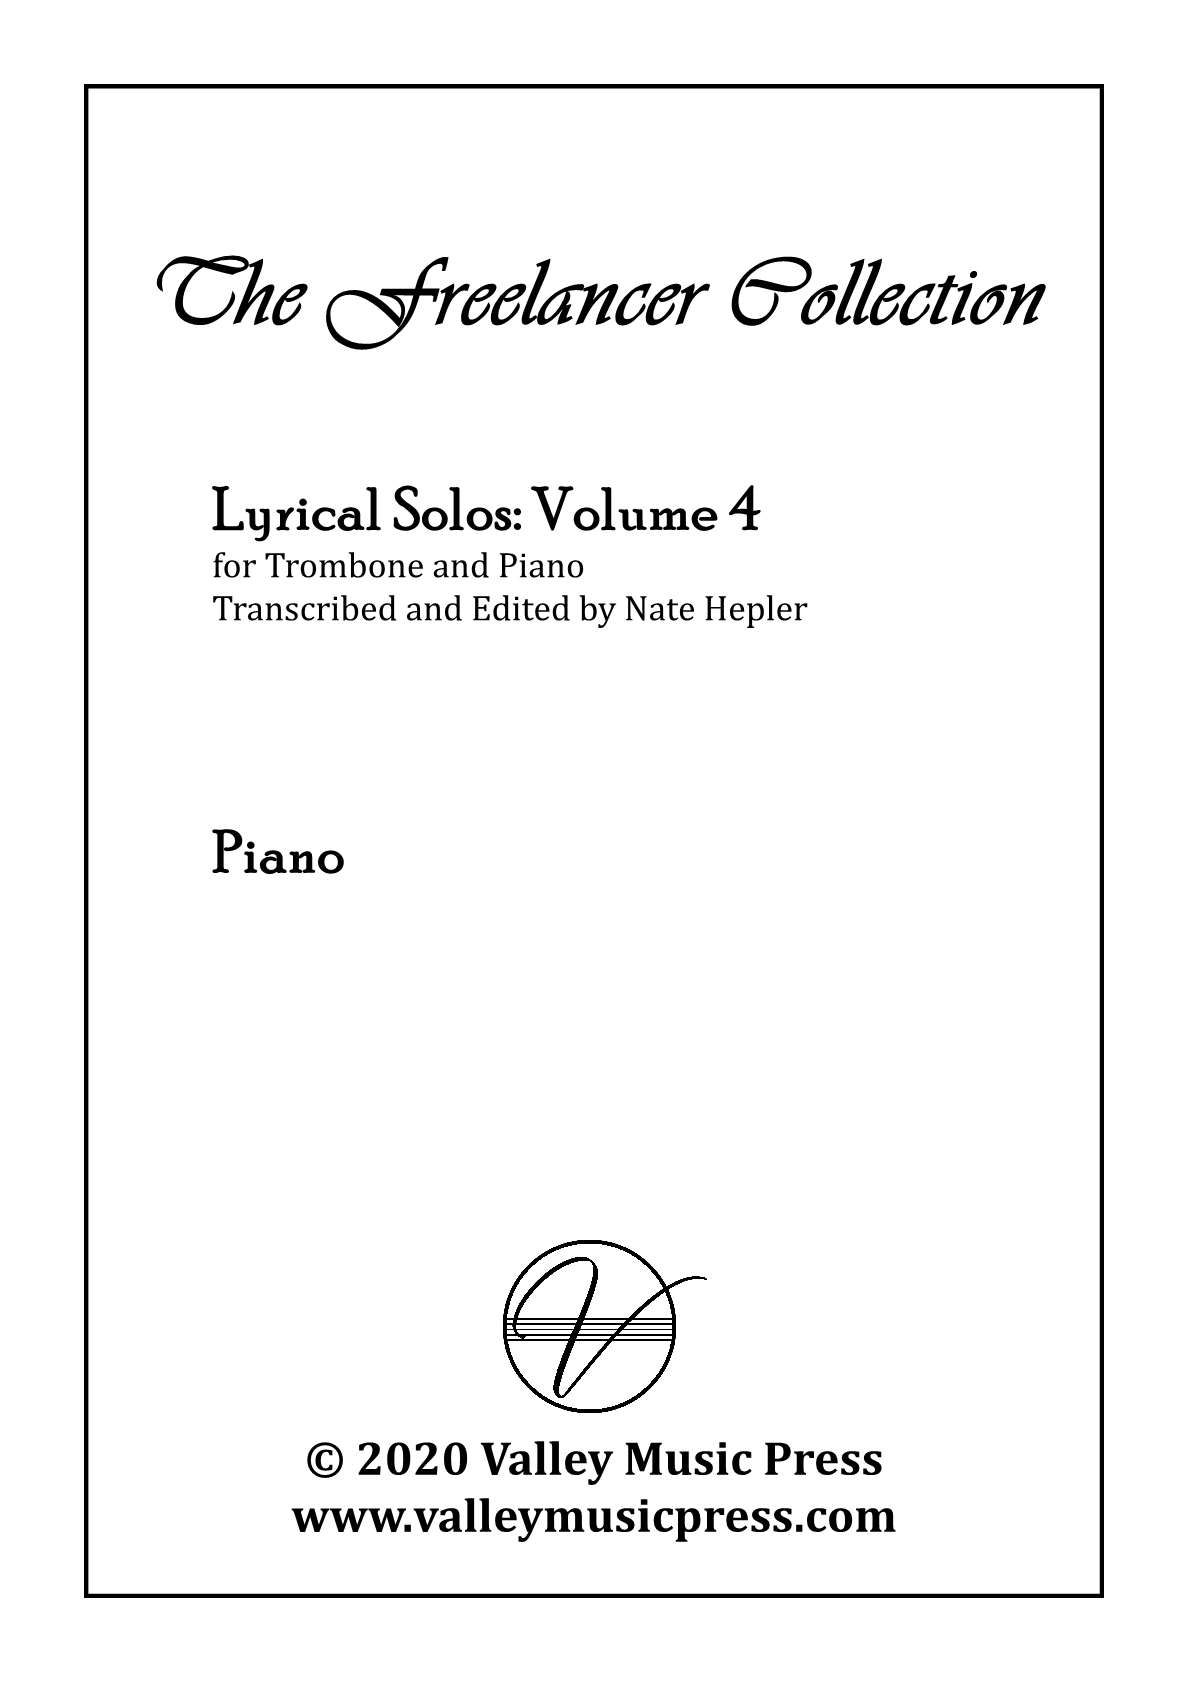 Hepler - Freelancer Collection Lyrical Solos Vol 4 (Trb & Piano) - Click Image to Close